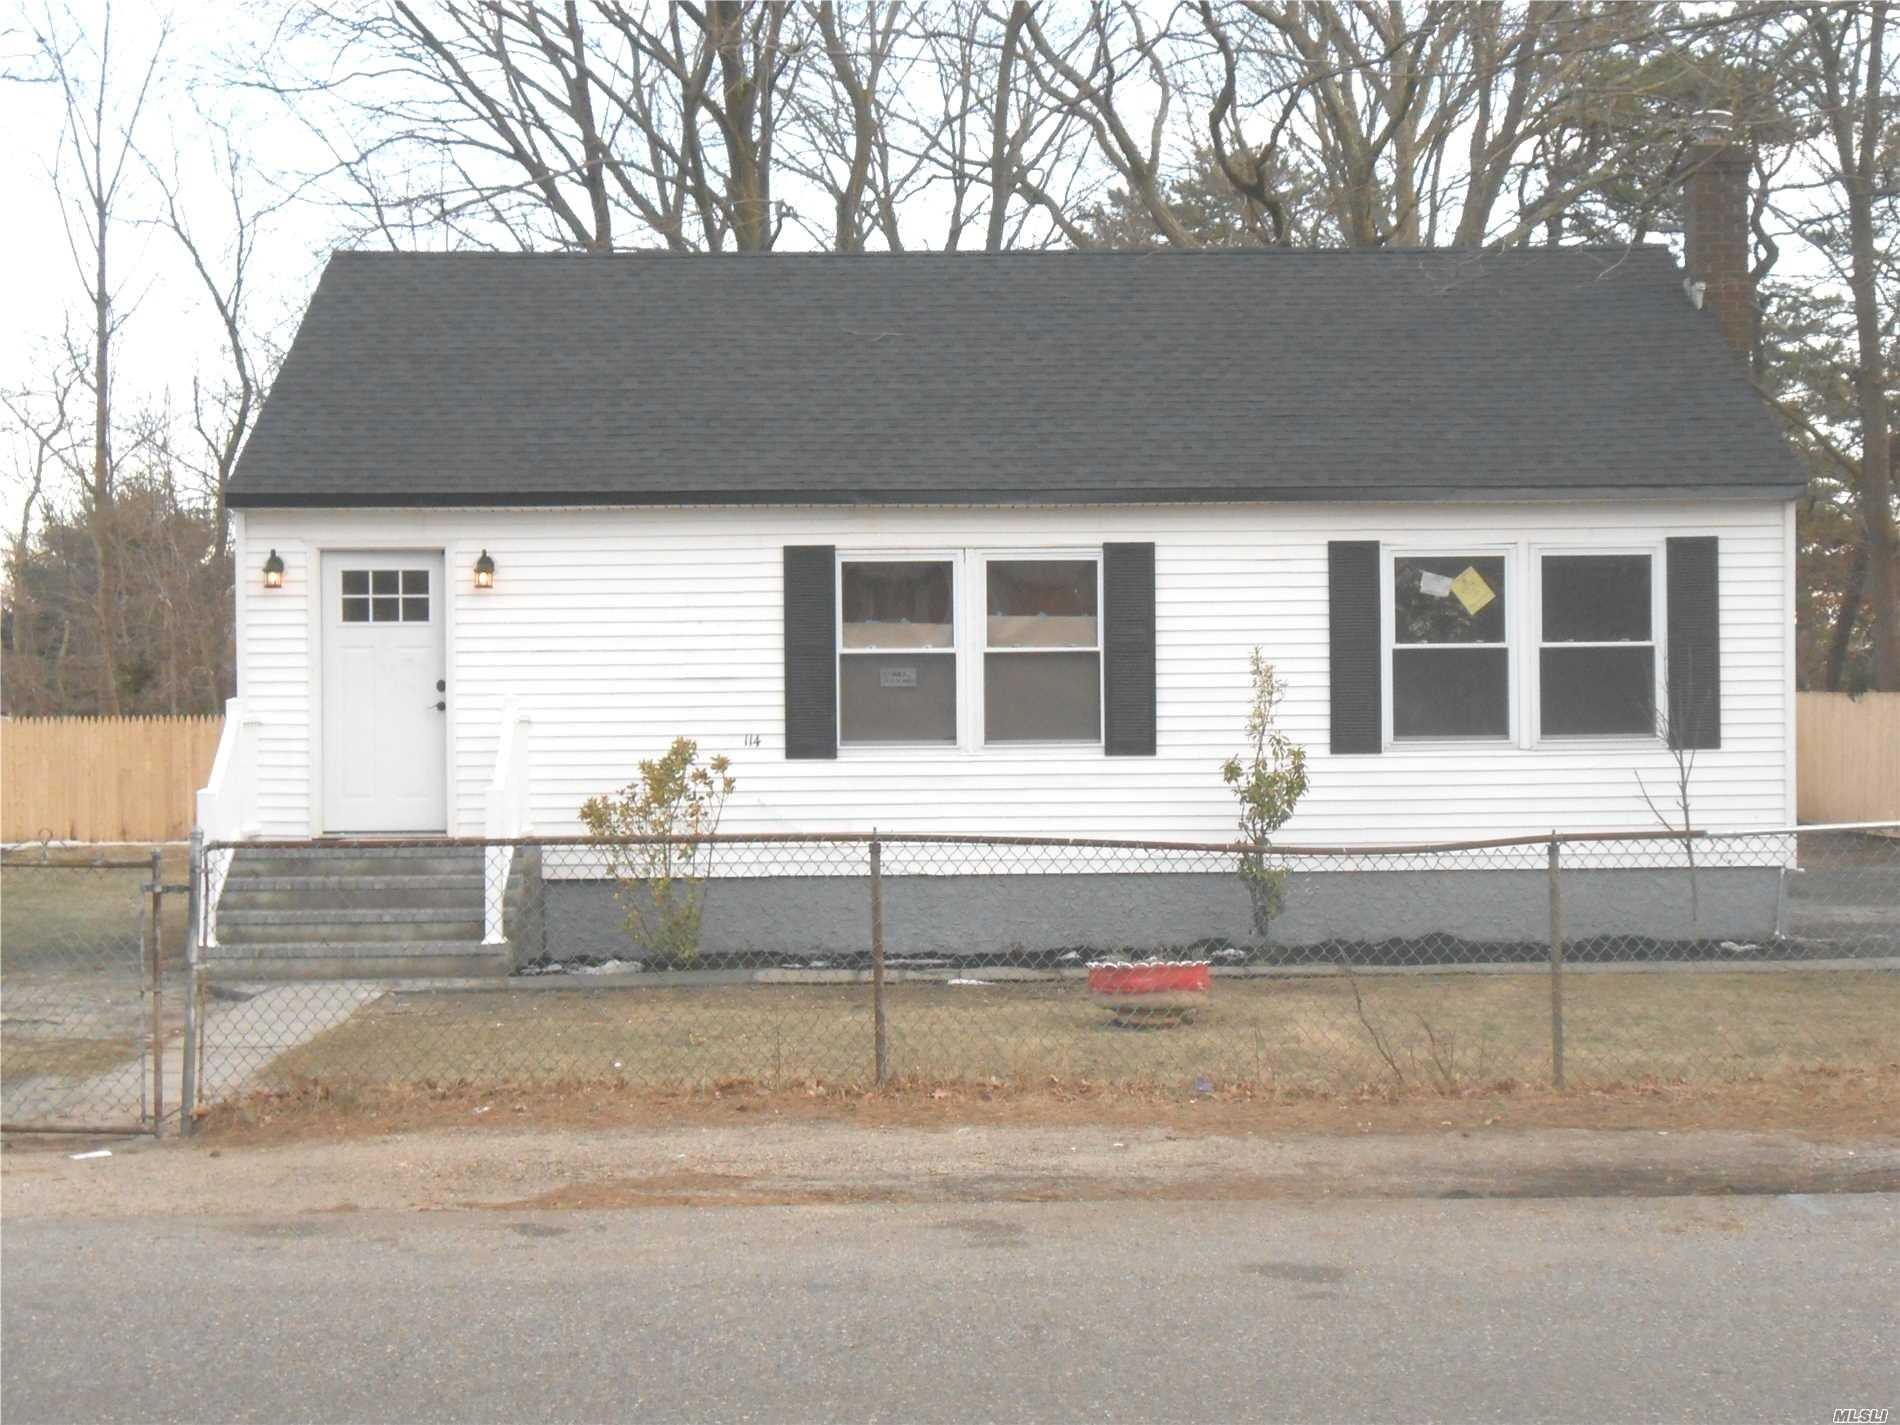 Completely Renovated Ranch With New Siding, New Windows, New Kitchen, New Roof, New Bathroom, New Electrical & Plumbing Throughout House, 100x100 Lot Size, Fenced Yard-Low, Low Taxes. Perfect for 1st time Home buyer.